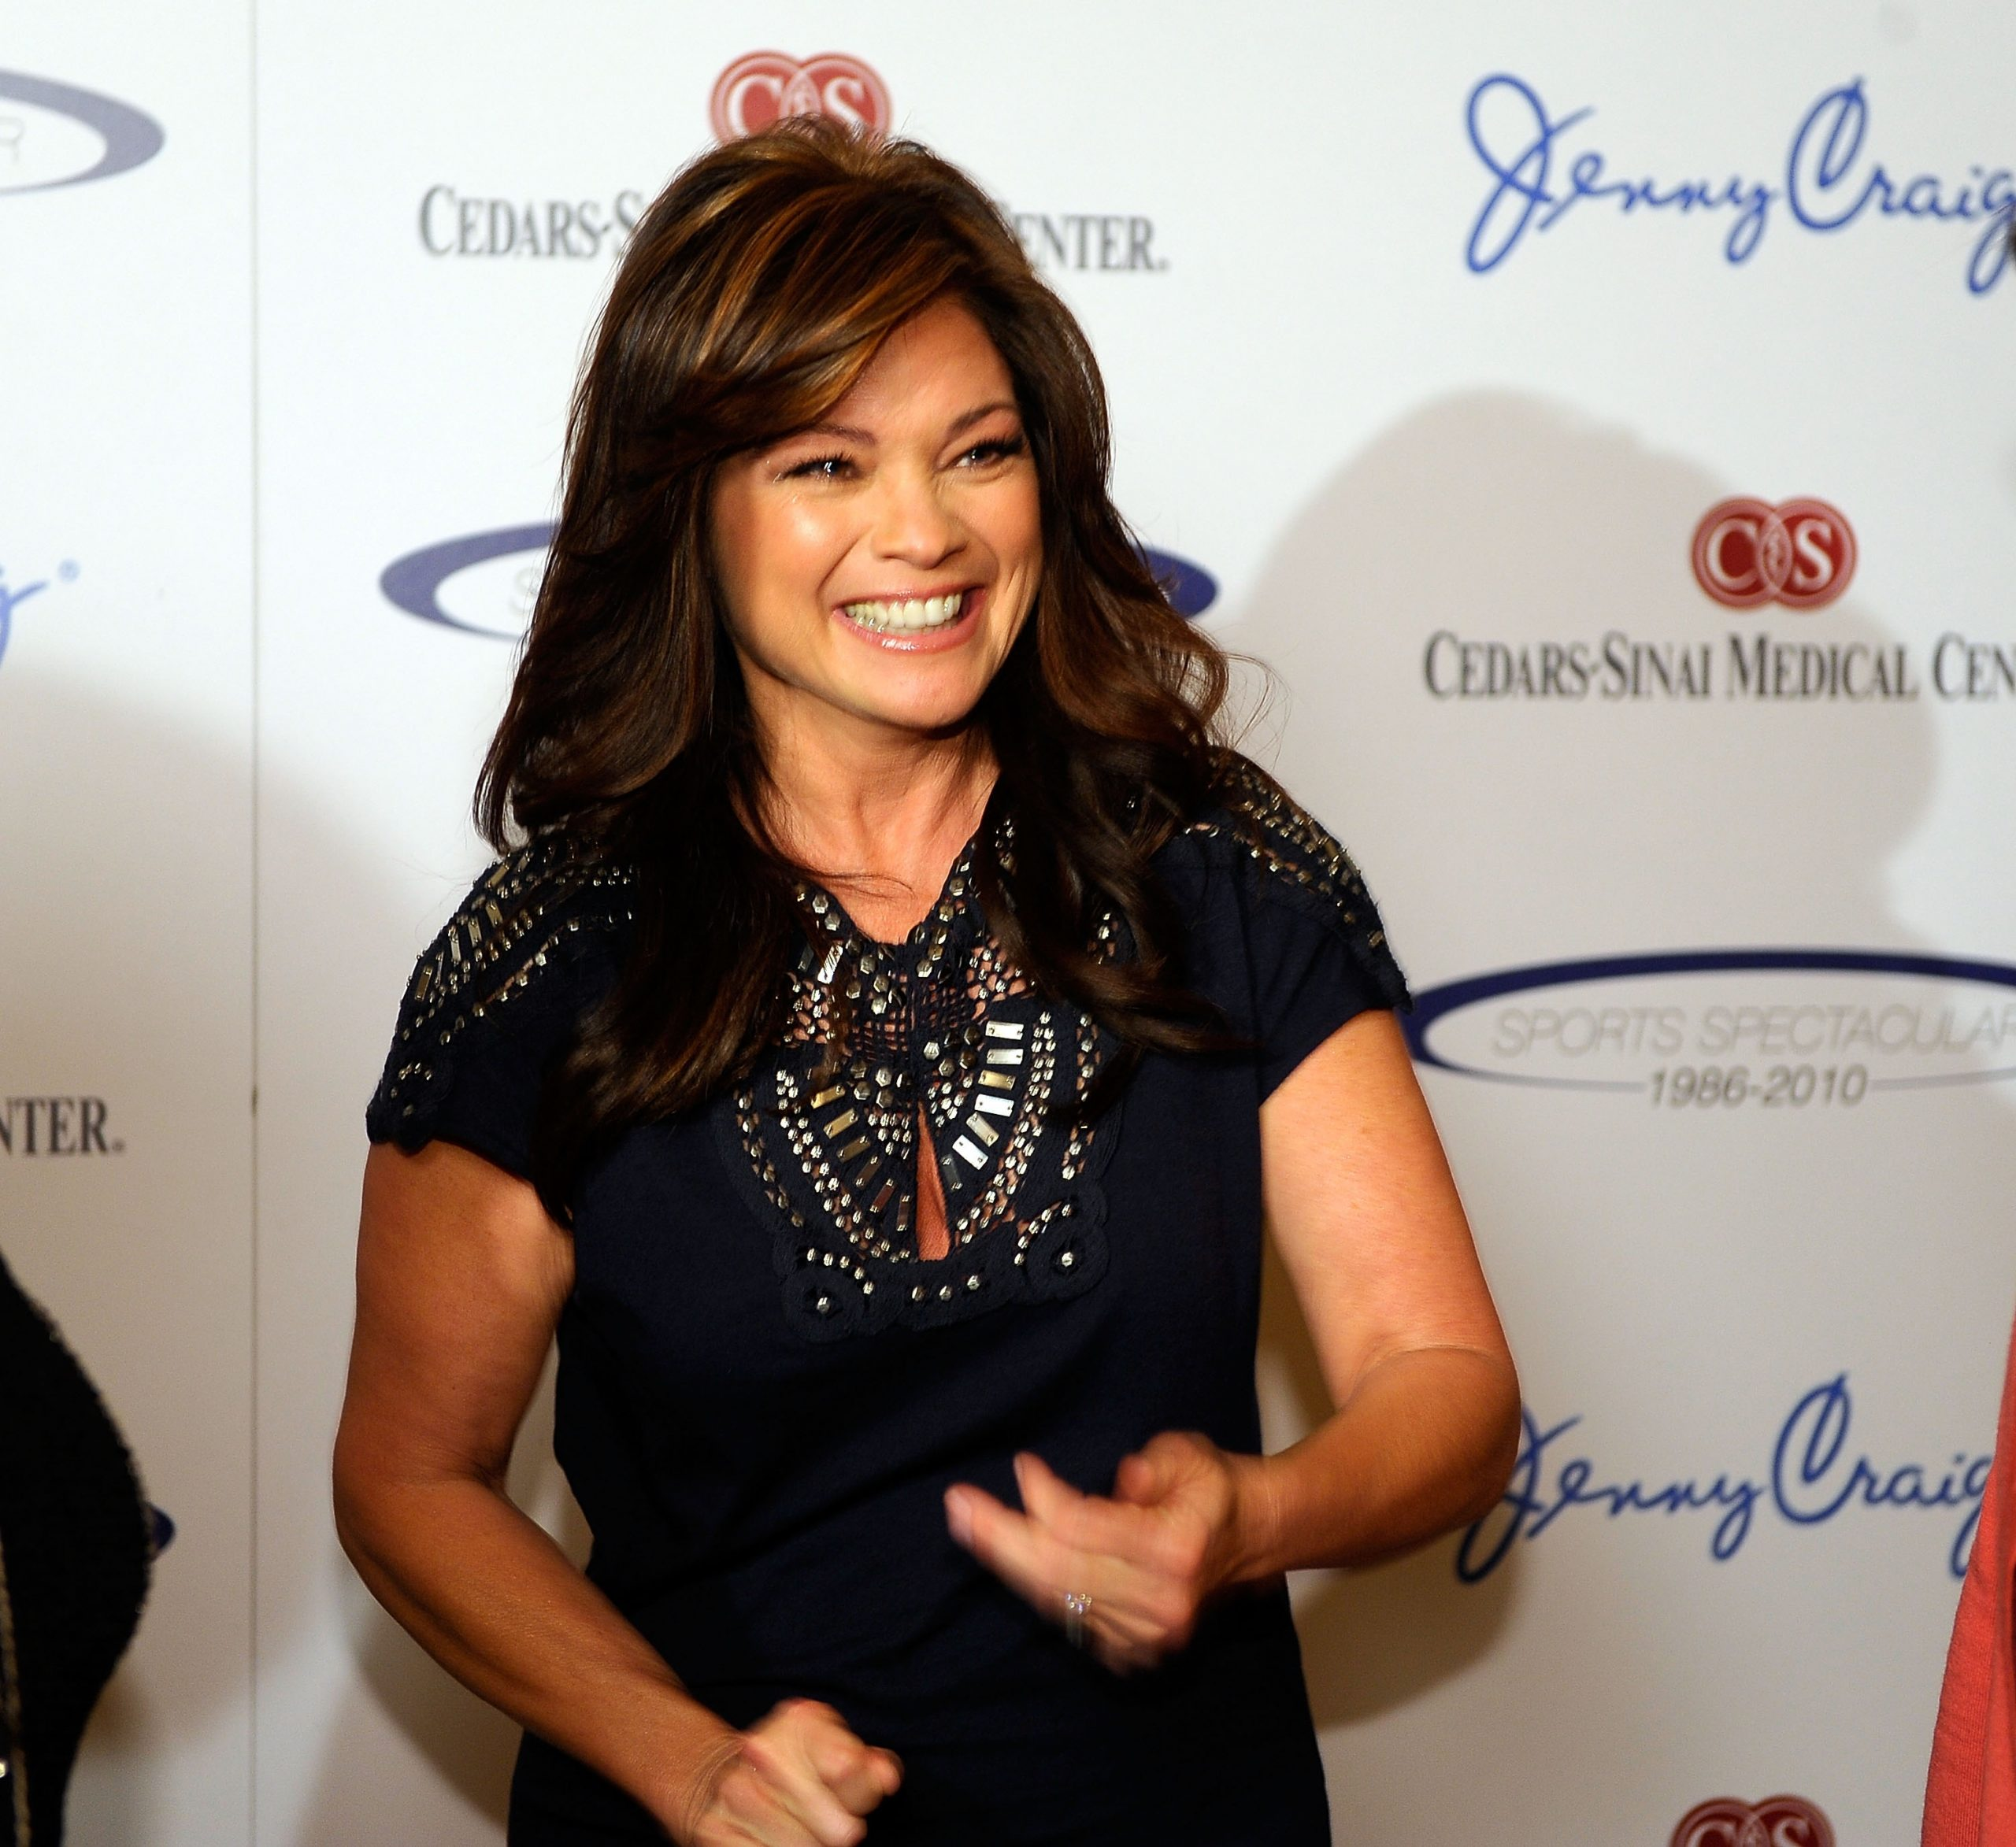 Actor and then-Jenny Craig spokesperson Valerie Bertinelli in 2010 at an event for the weight-loss company